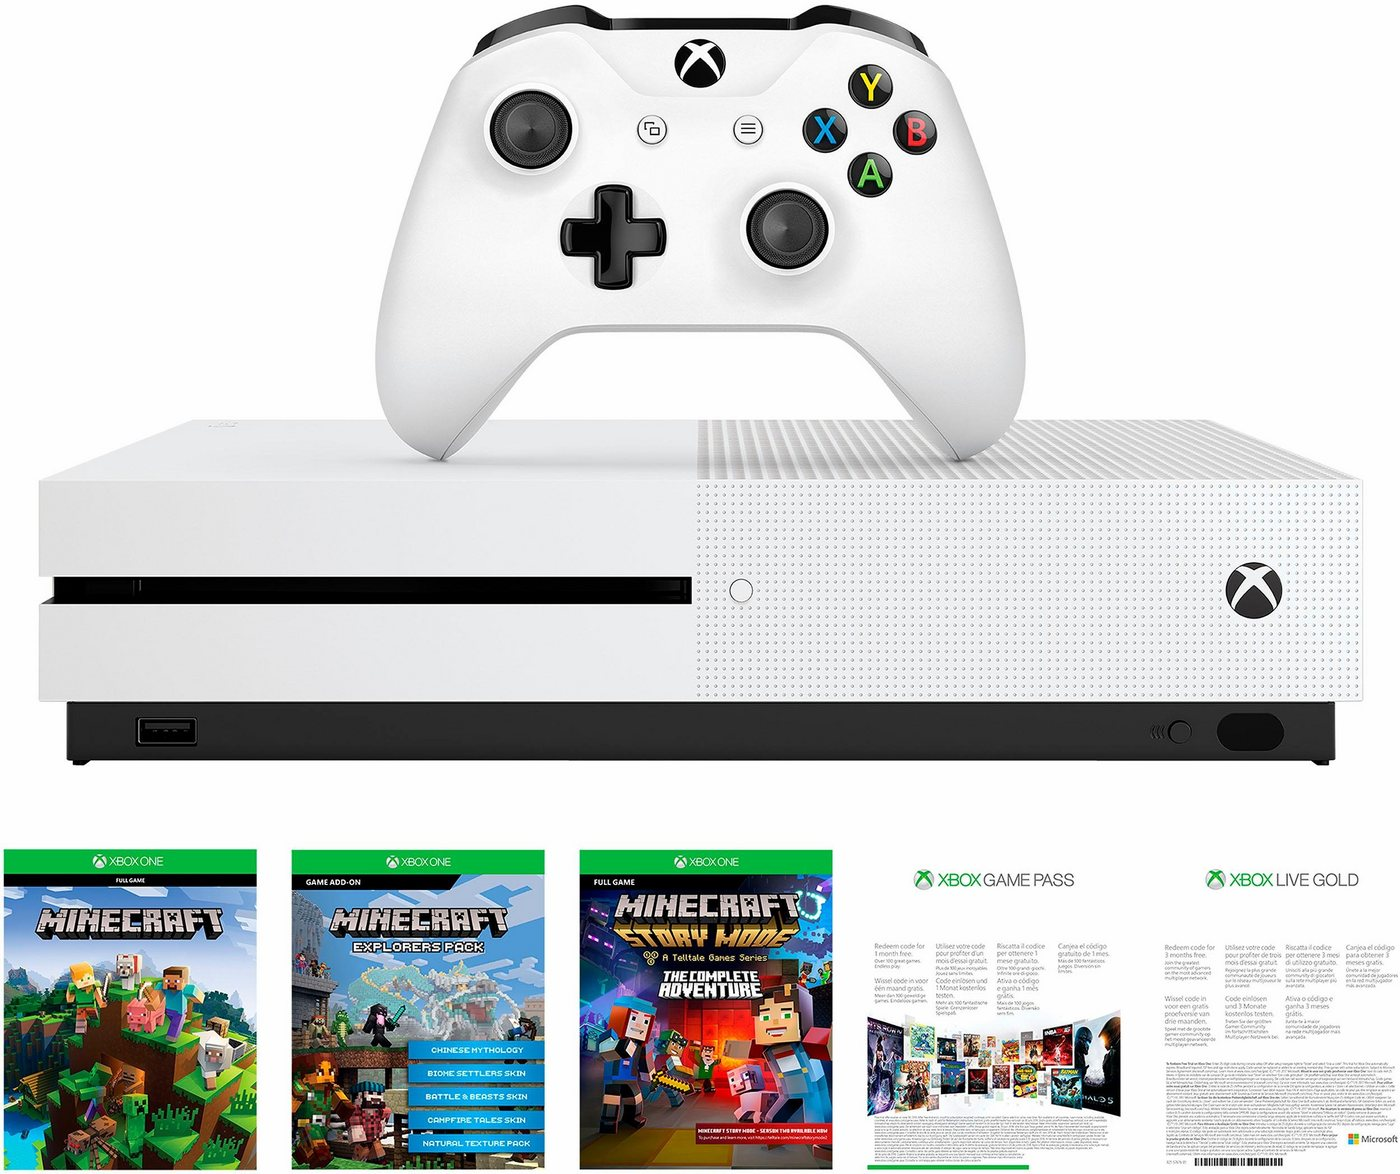 versandh ndler otto tagesangebot xbox one s 500gb bundle. Black Bedroom Furniture Sets. Home Design Ideas